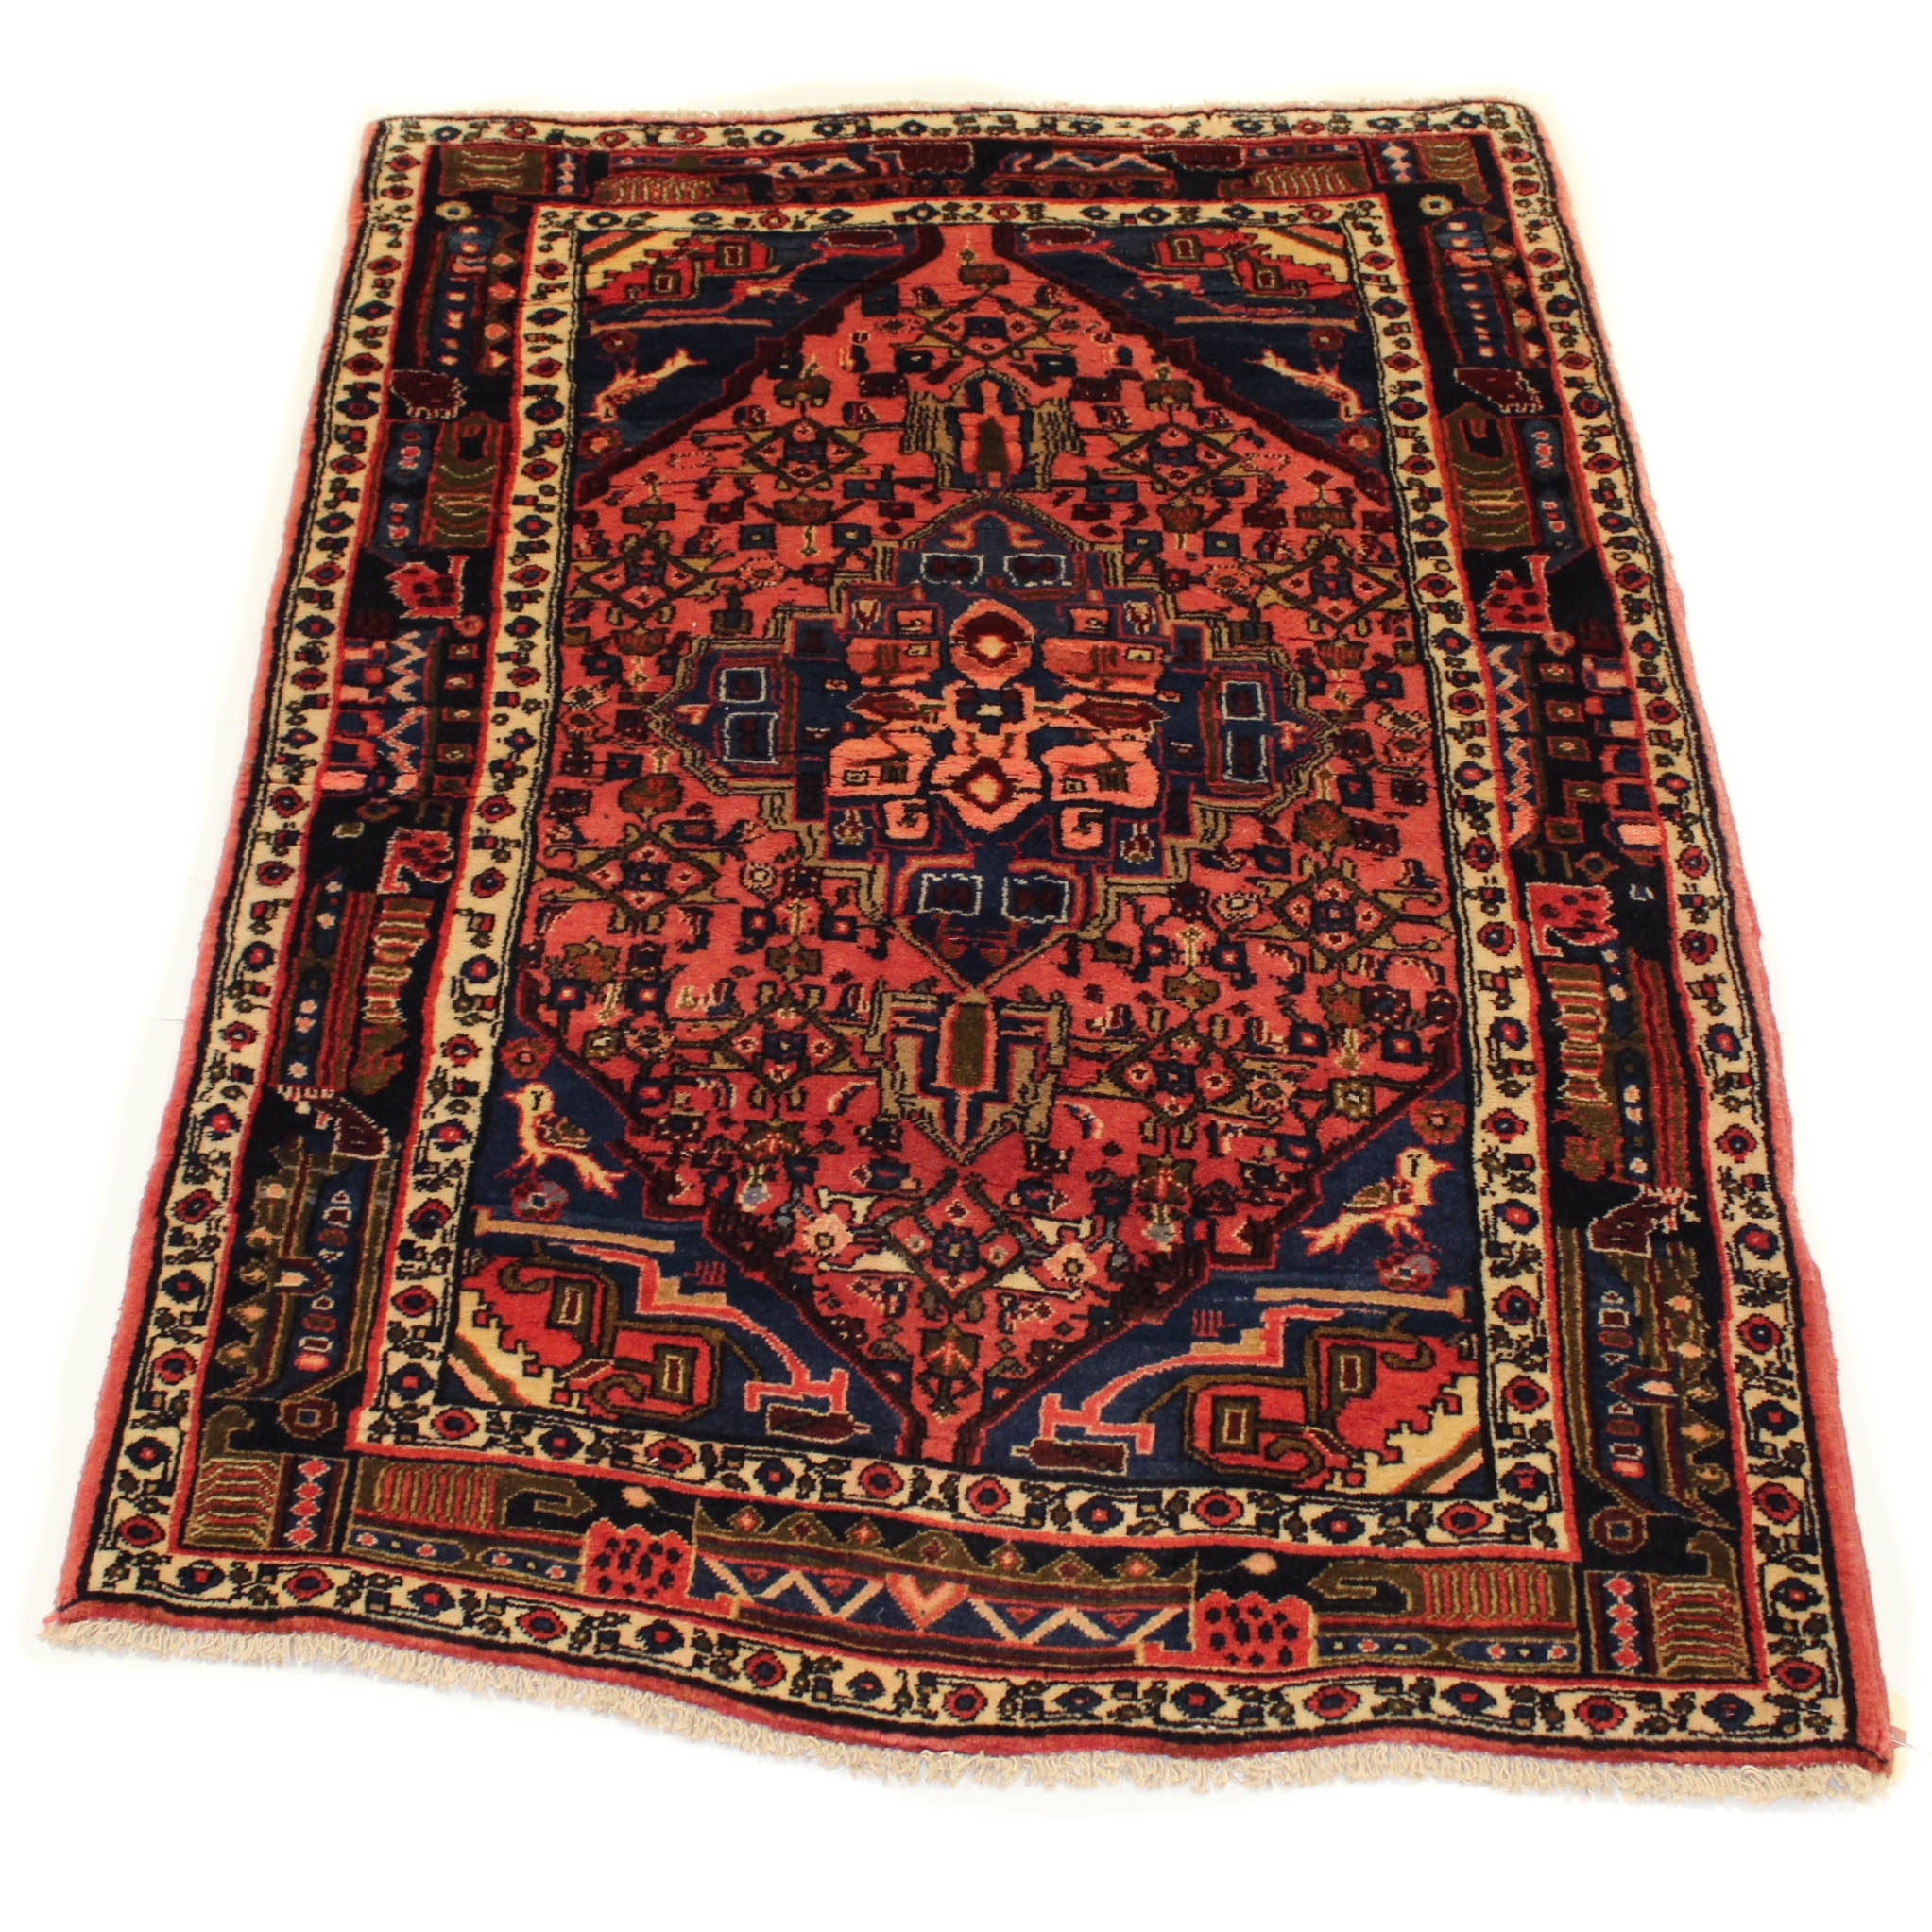 Semi-Antique Hand-Knotted Persian Heriz Rug